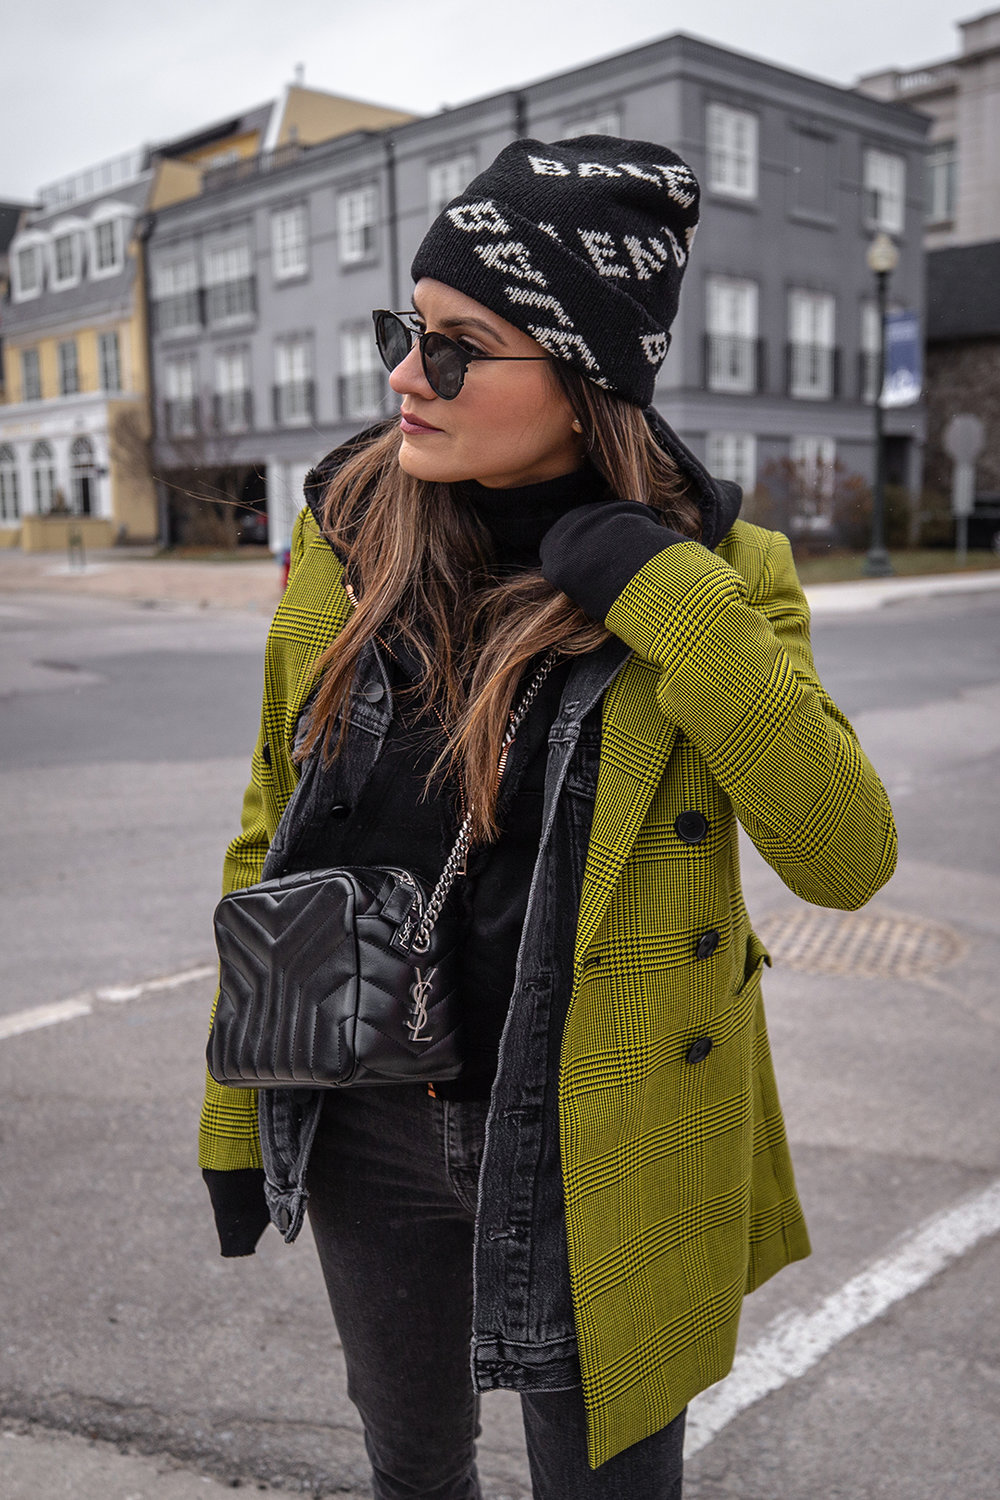 Nathalie Martin, Robert Rodriguez yellow plaid houndstooth blazer, Balenciaga logo beanie hat, Loewe velvet patent leather boots, grey jeans, Alexander Wang denim vest, Frank & Eileen hoodie, Saint Laurent LouLou bag, streetstyle woahstyle.com_6163.jpg